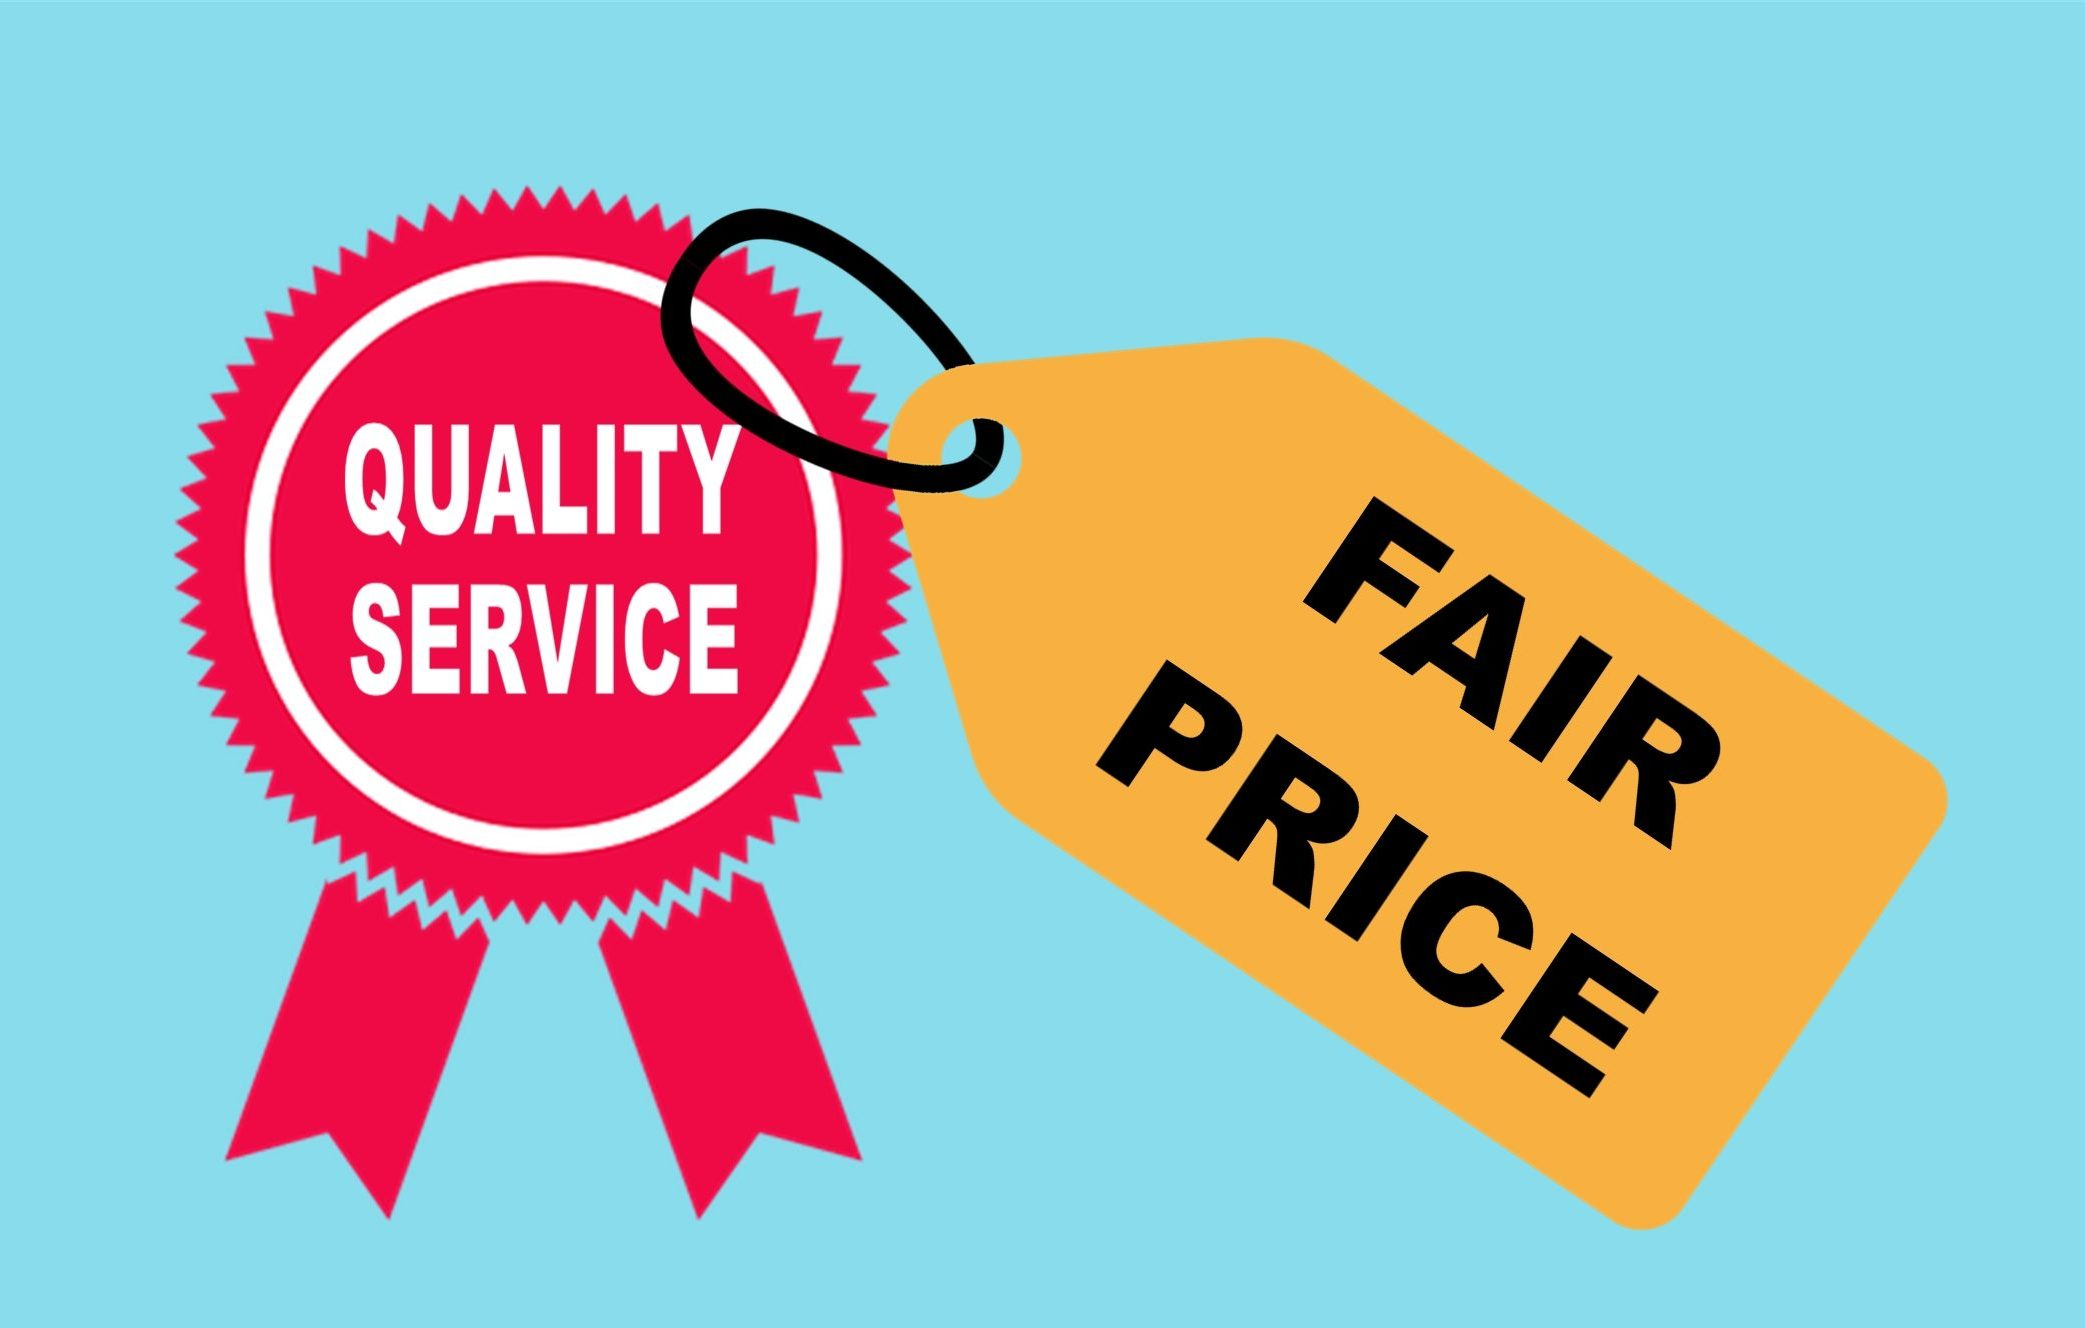 Illustration of red ribbon seal that says quality service with priced tag that says fair price